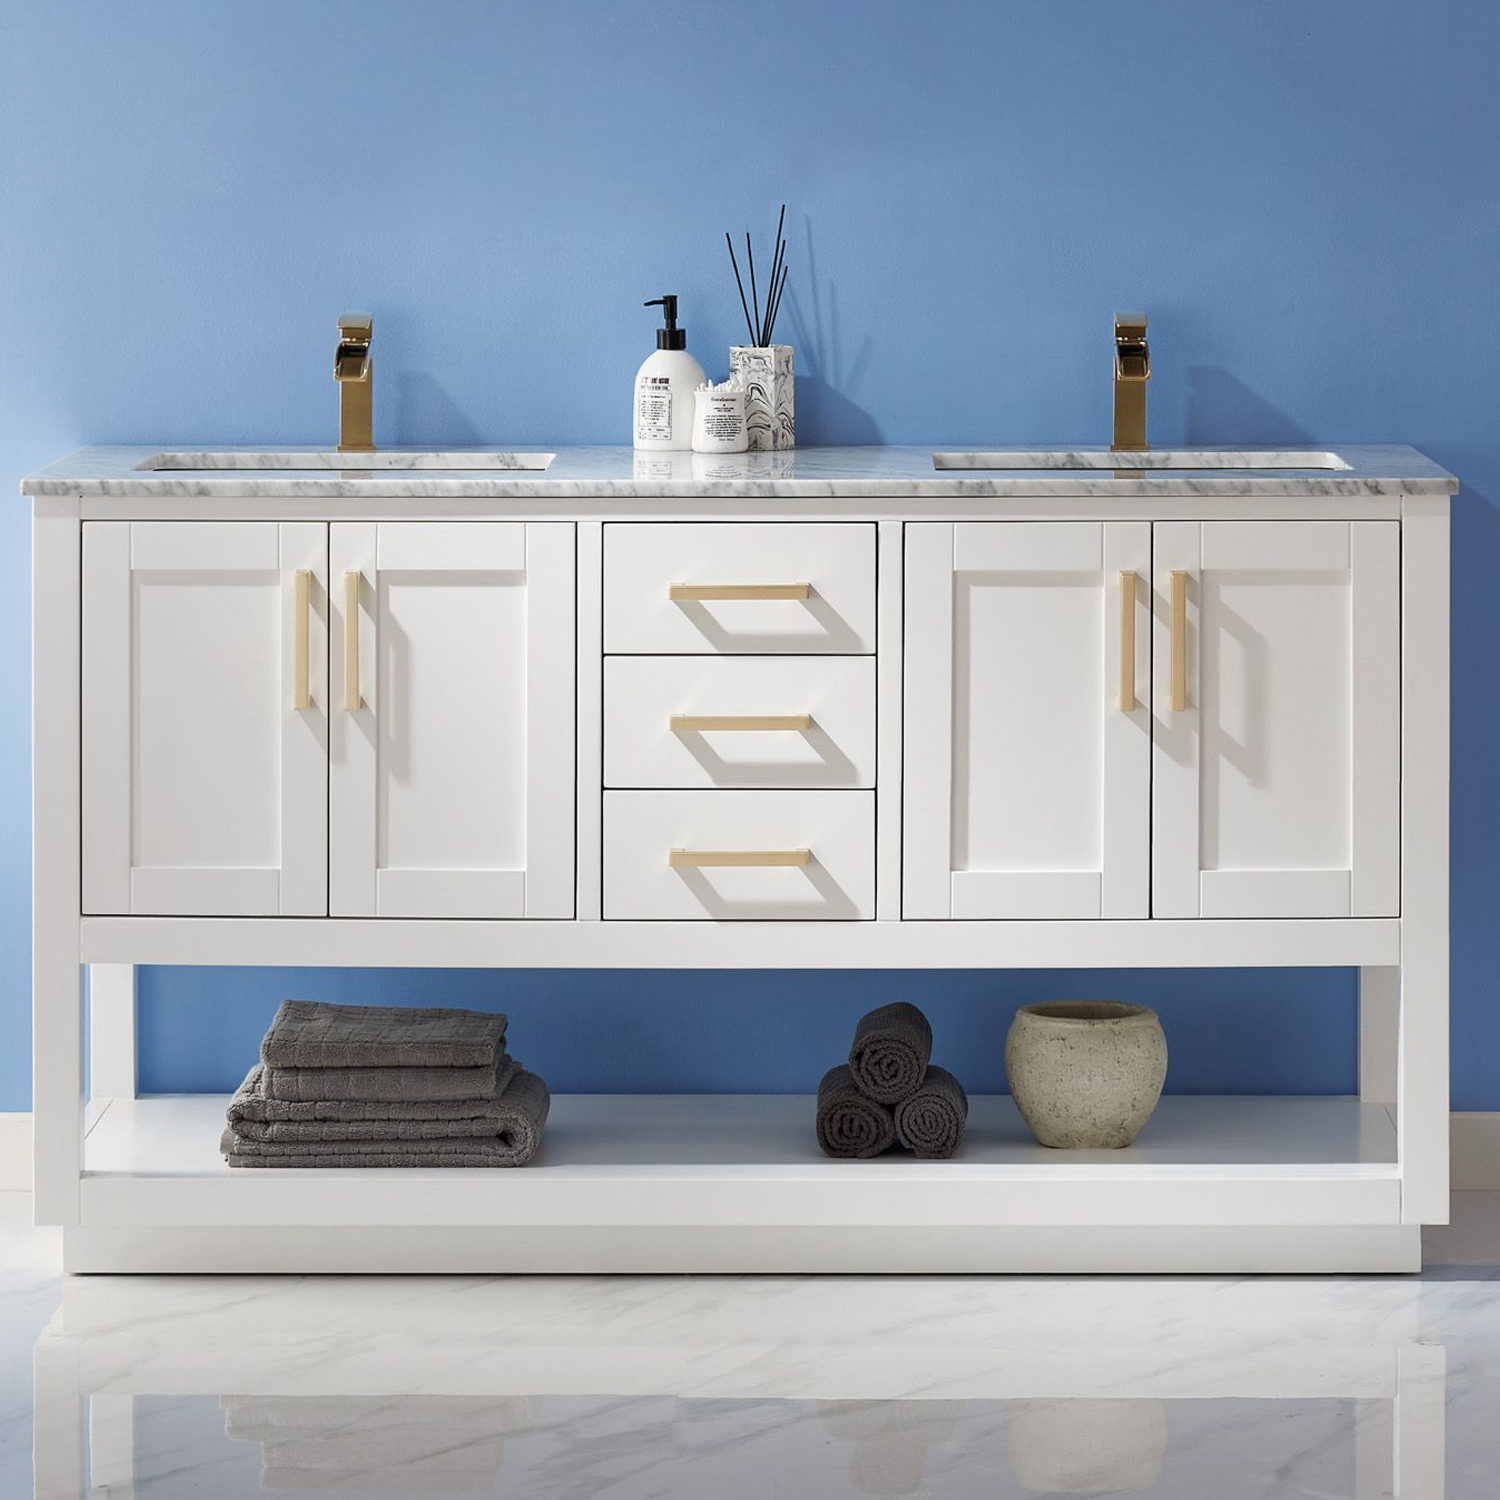 "Issac Edwards Collection 60"" Double Bathroom Vanity Set in White and Carrara White Marble Countertop with Mirror Option"